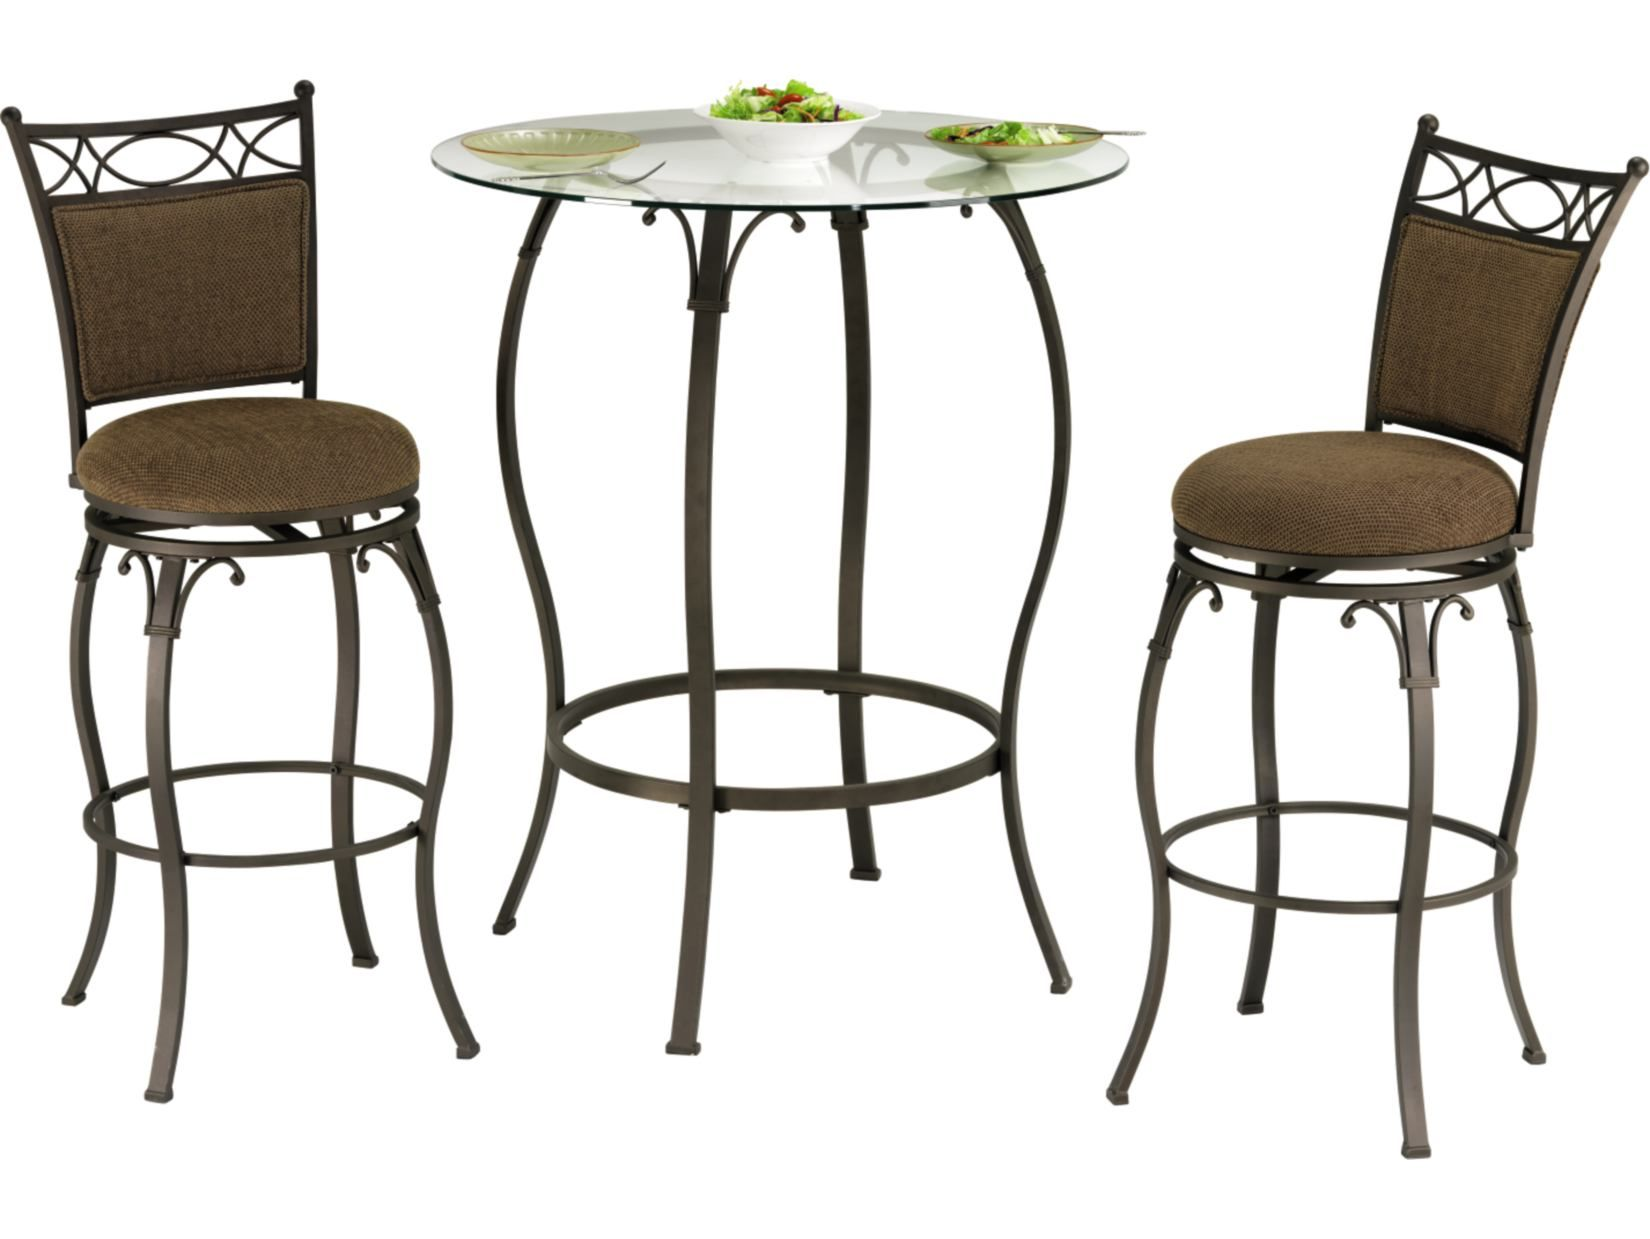 Main Street Logan 3 PC Bistro Set Value City Furniture